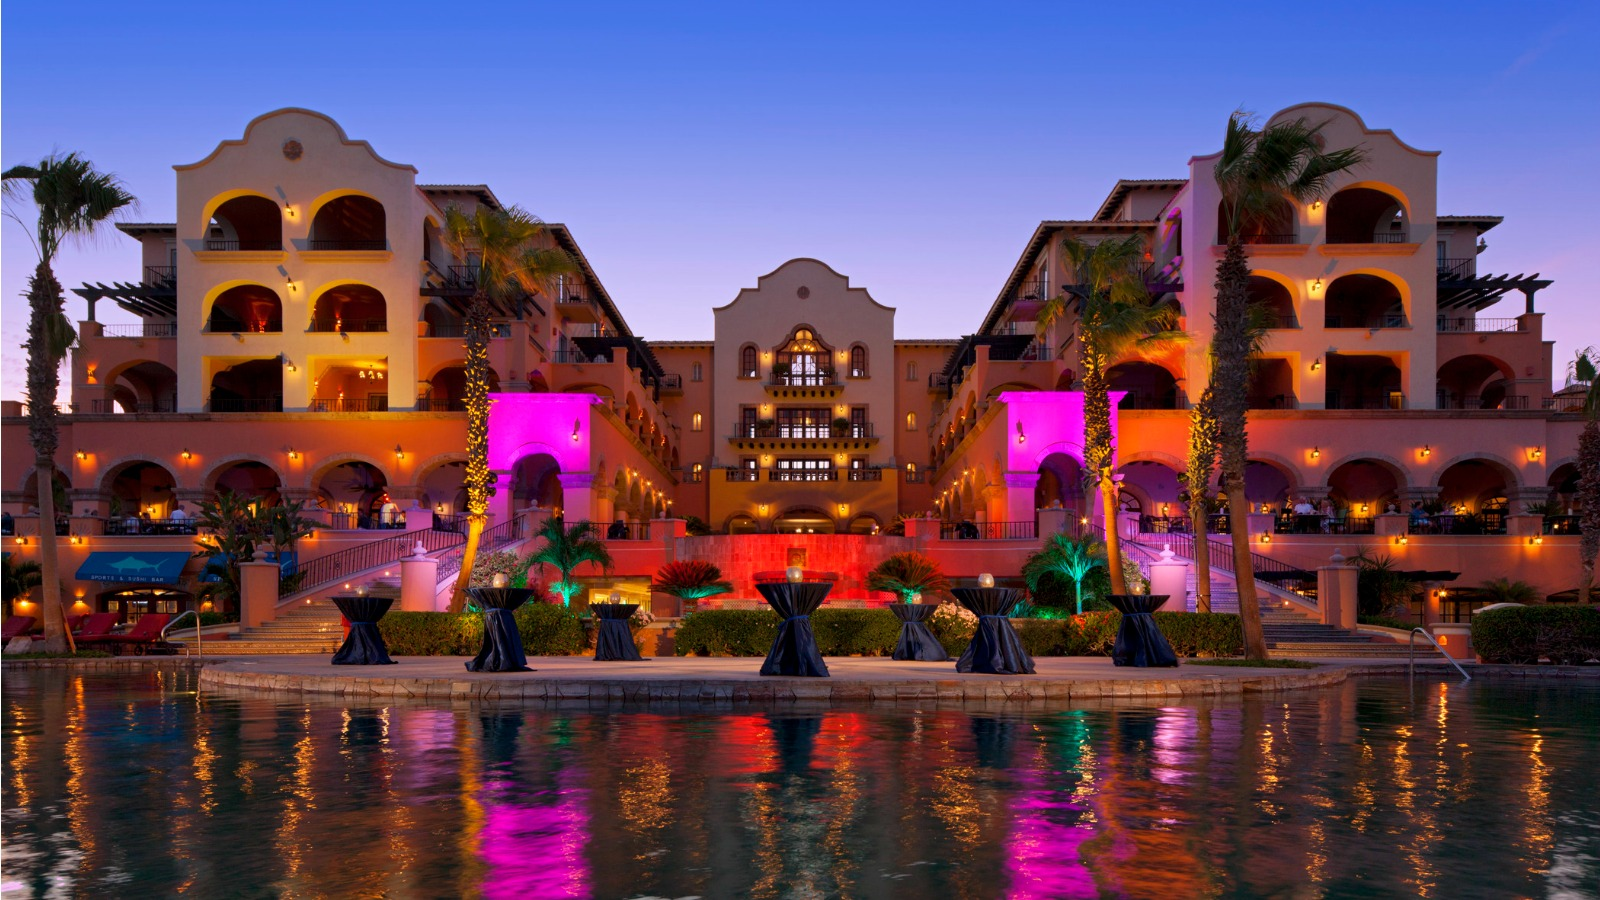 Evening and sunset at Sheraton Hacienda del Mar Golf & Spa Resort